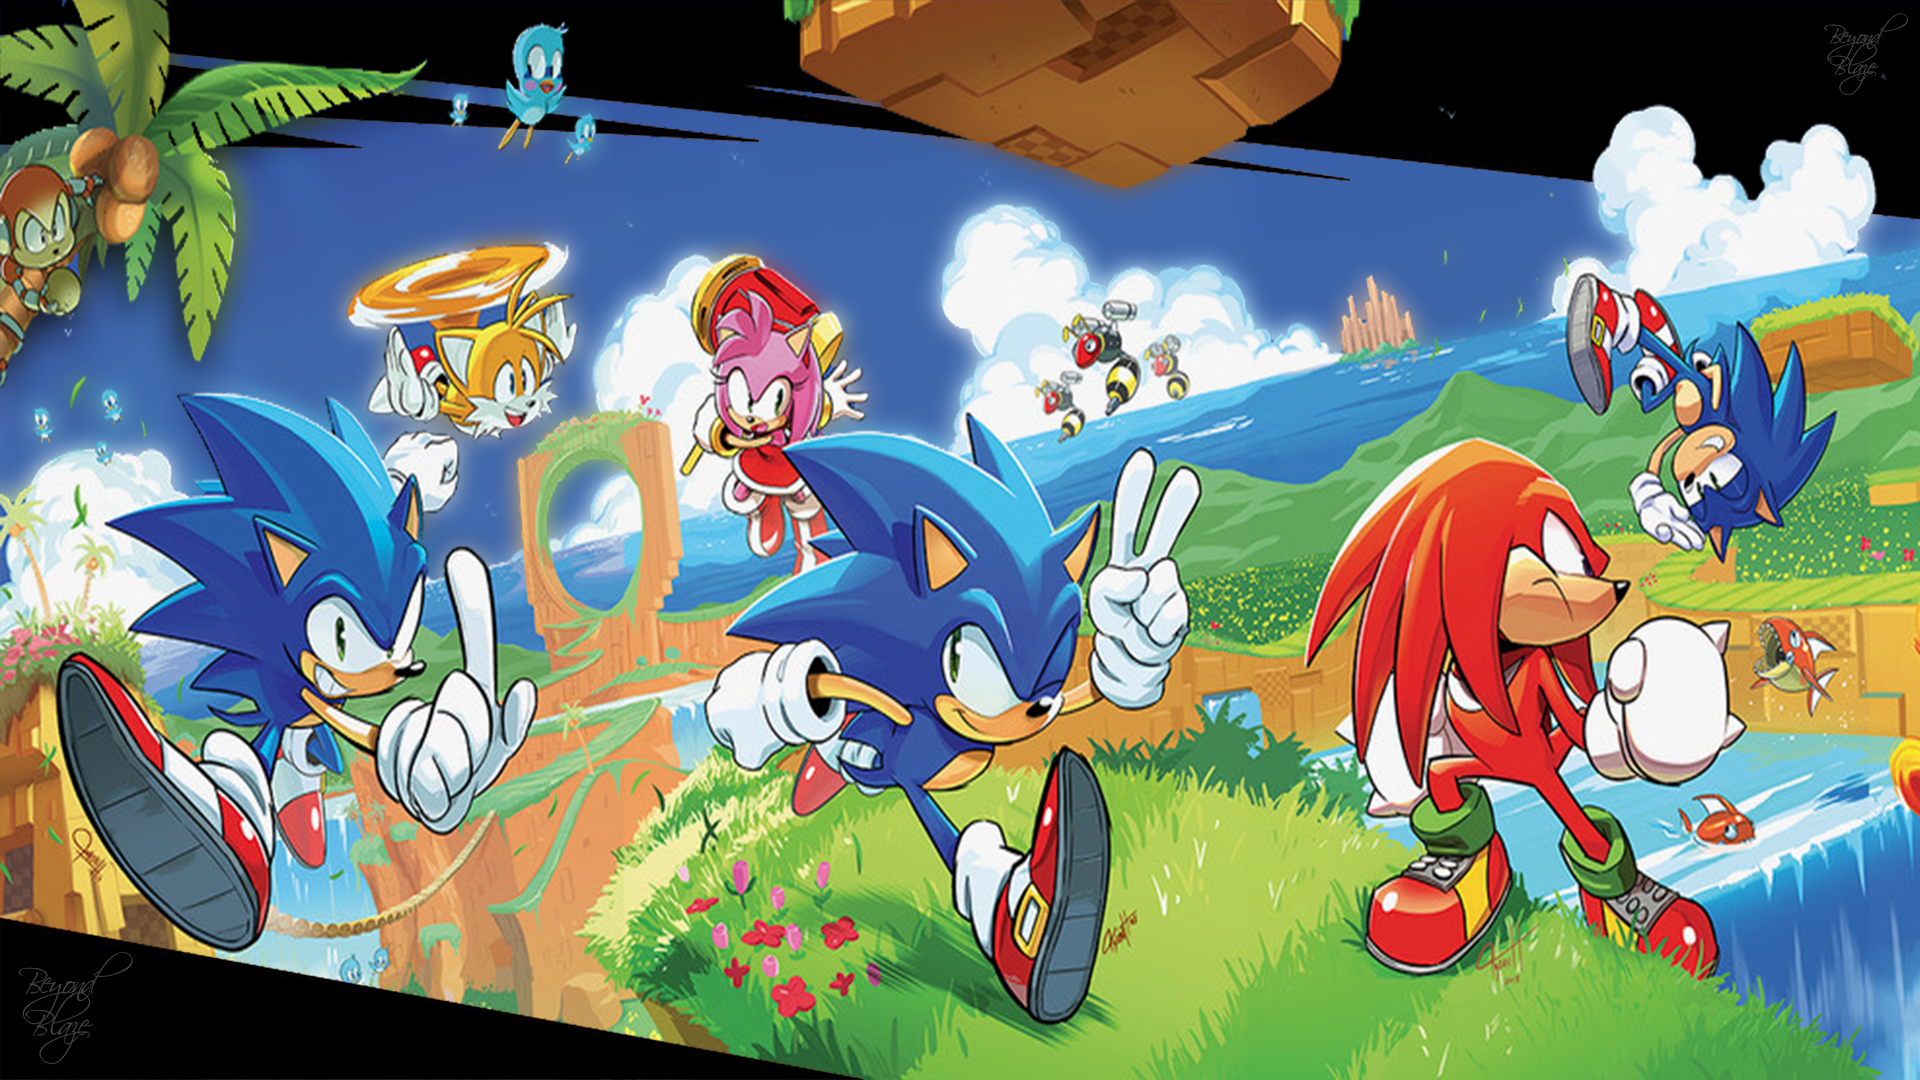 Sonic The Hedgehog Idw Wallpaper Cover By Blaze735 On Deviantart